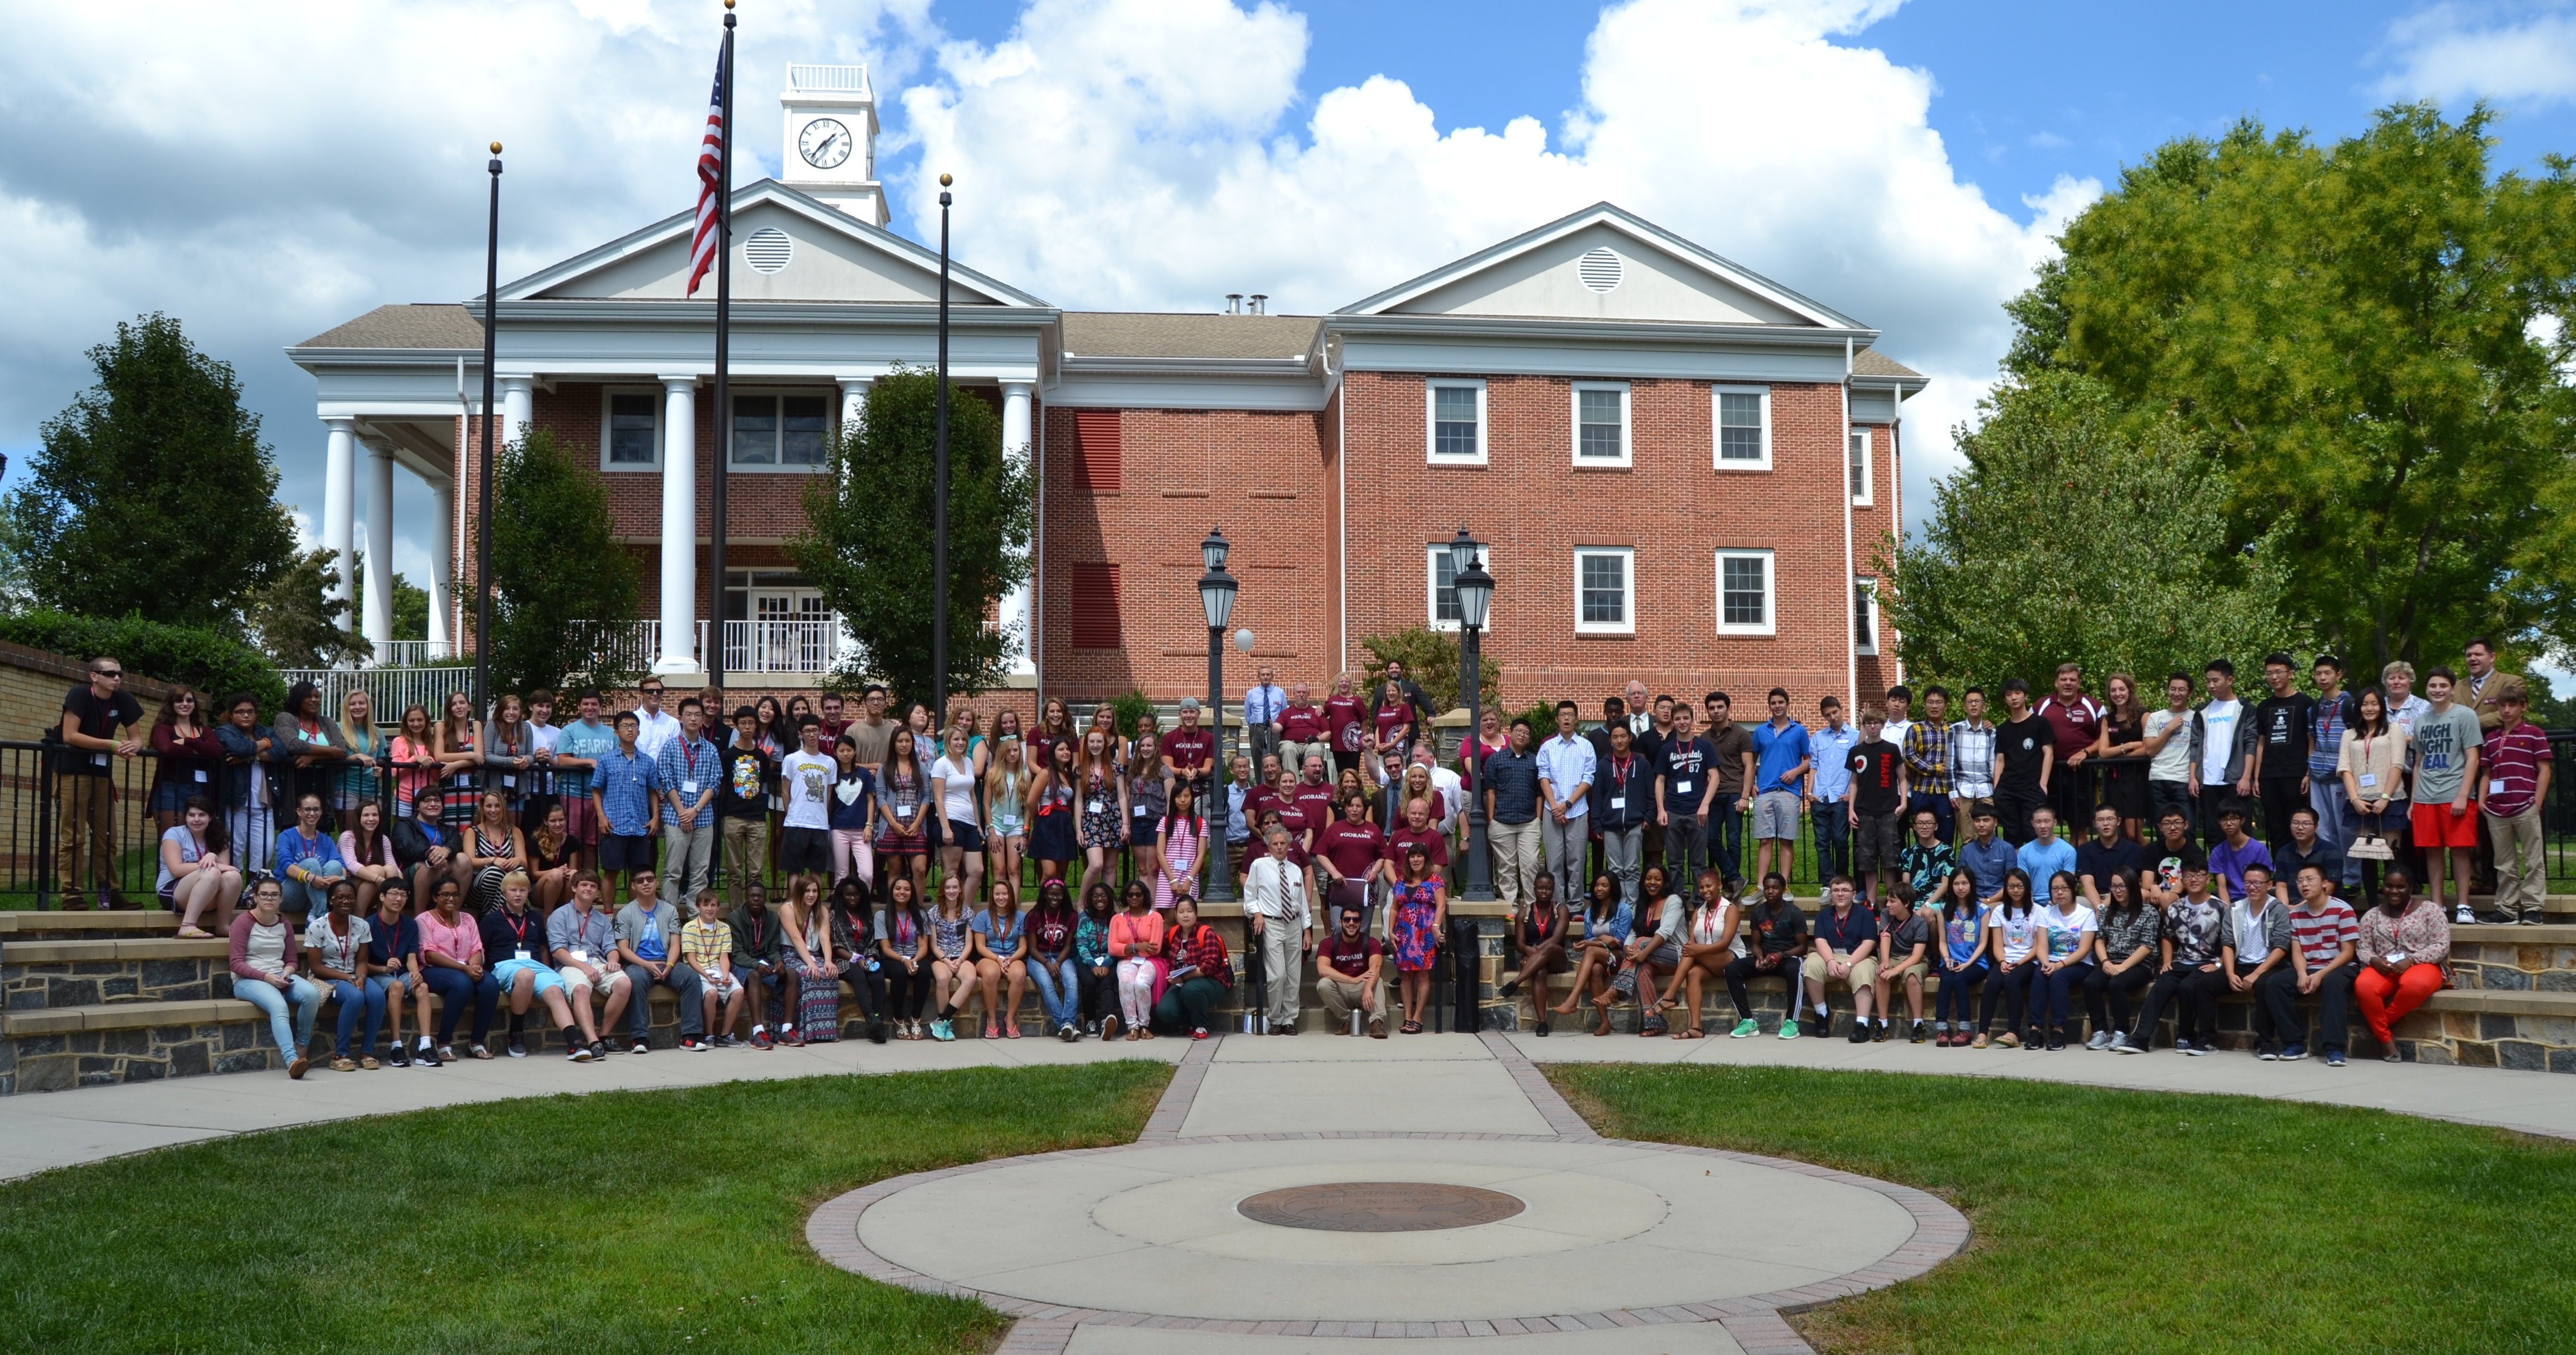 West Nottingham Academy Boarding School 2017 Maryland USA